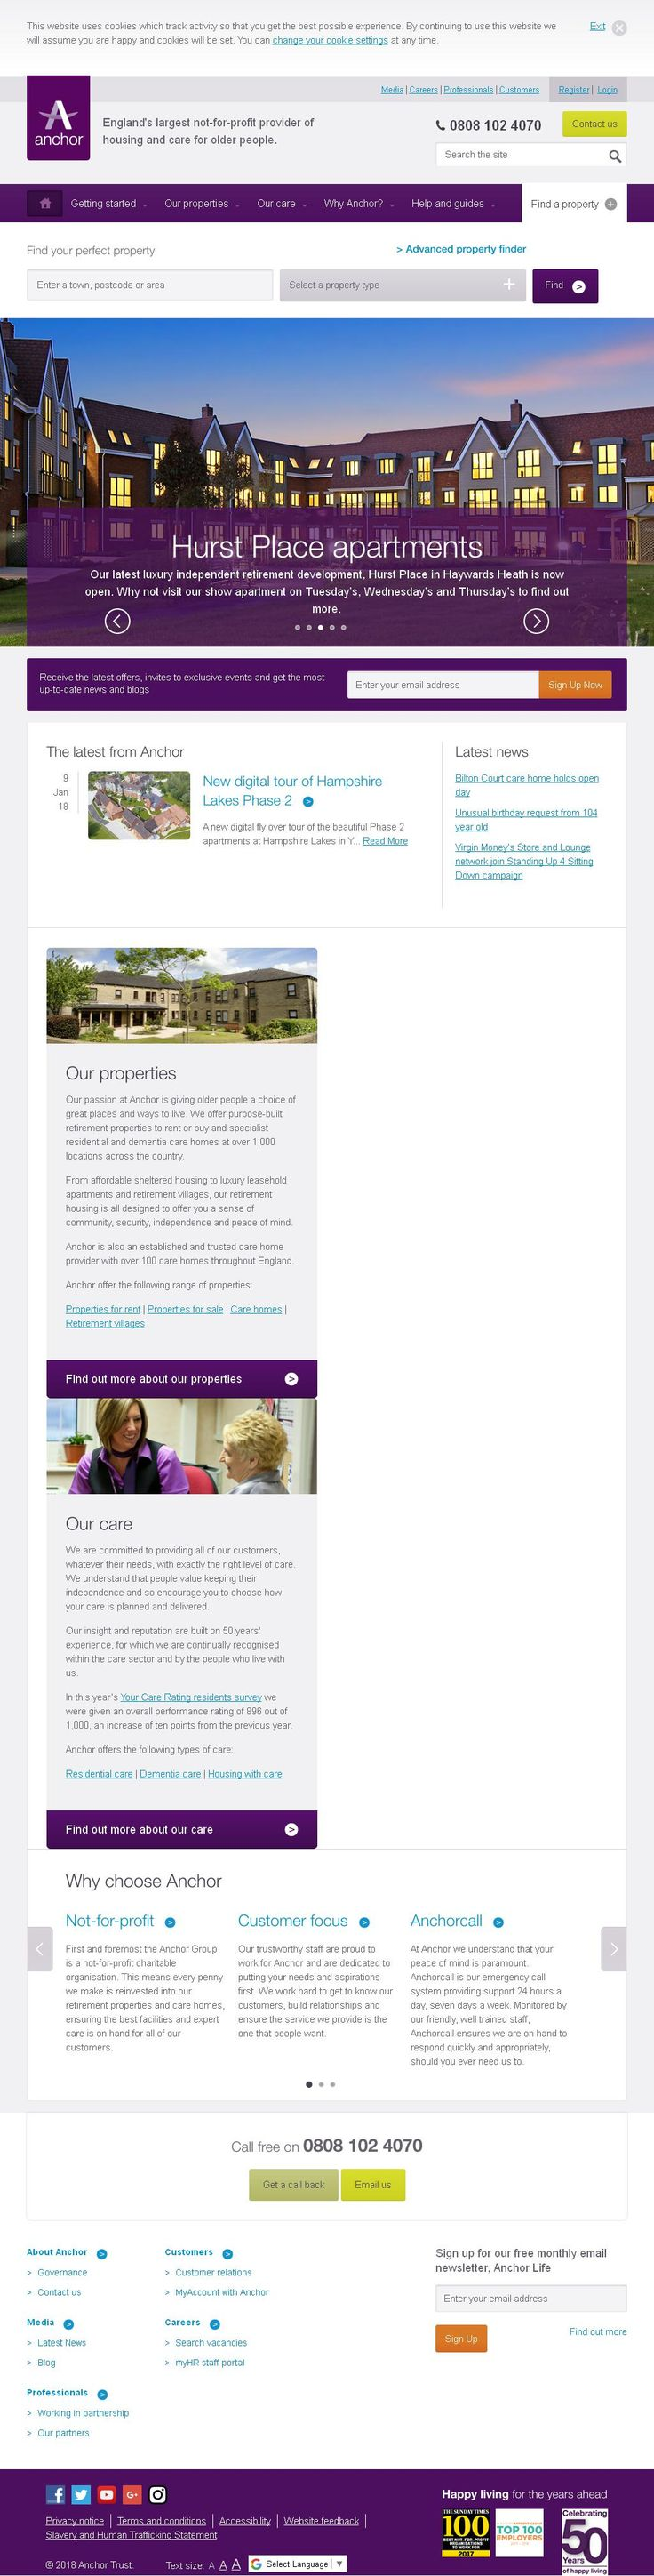 Anchor Trust Housing Associations Societies Trusts & Co-Operatives Barleyfields Shipton Road  York North Yorkshire YO30 5SB | To get more infomration about Anchor Trust, Location Map, Phone numbers, Email, Website please visit http://www.HaiUK.co.uk